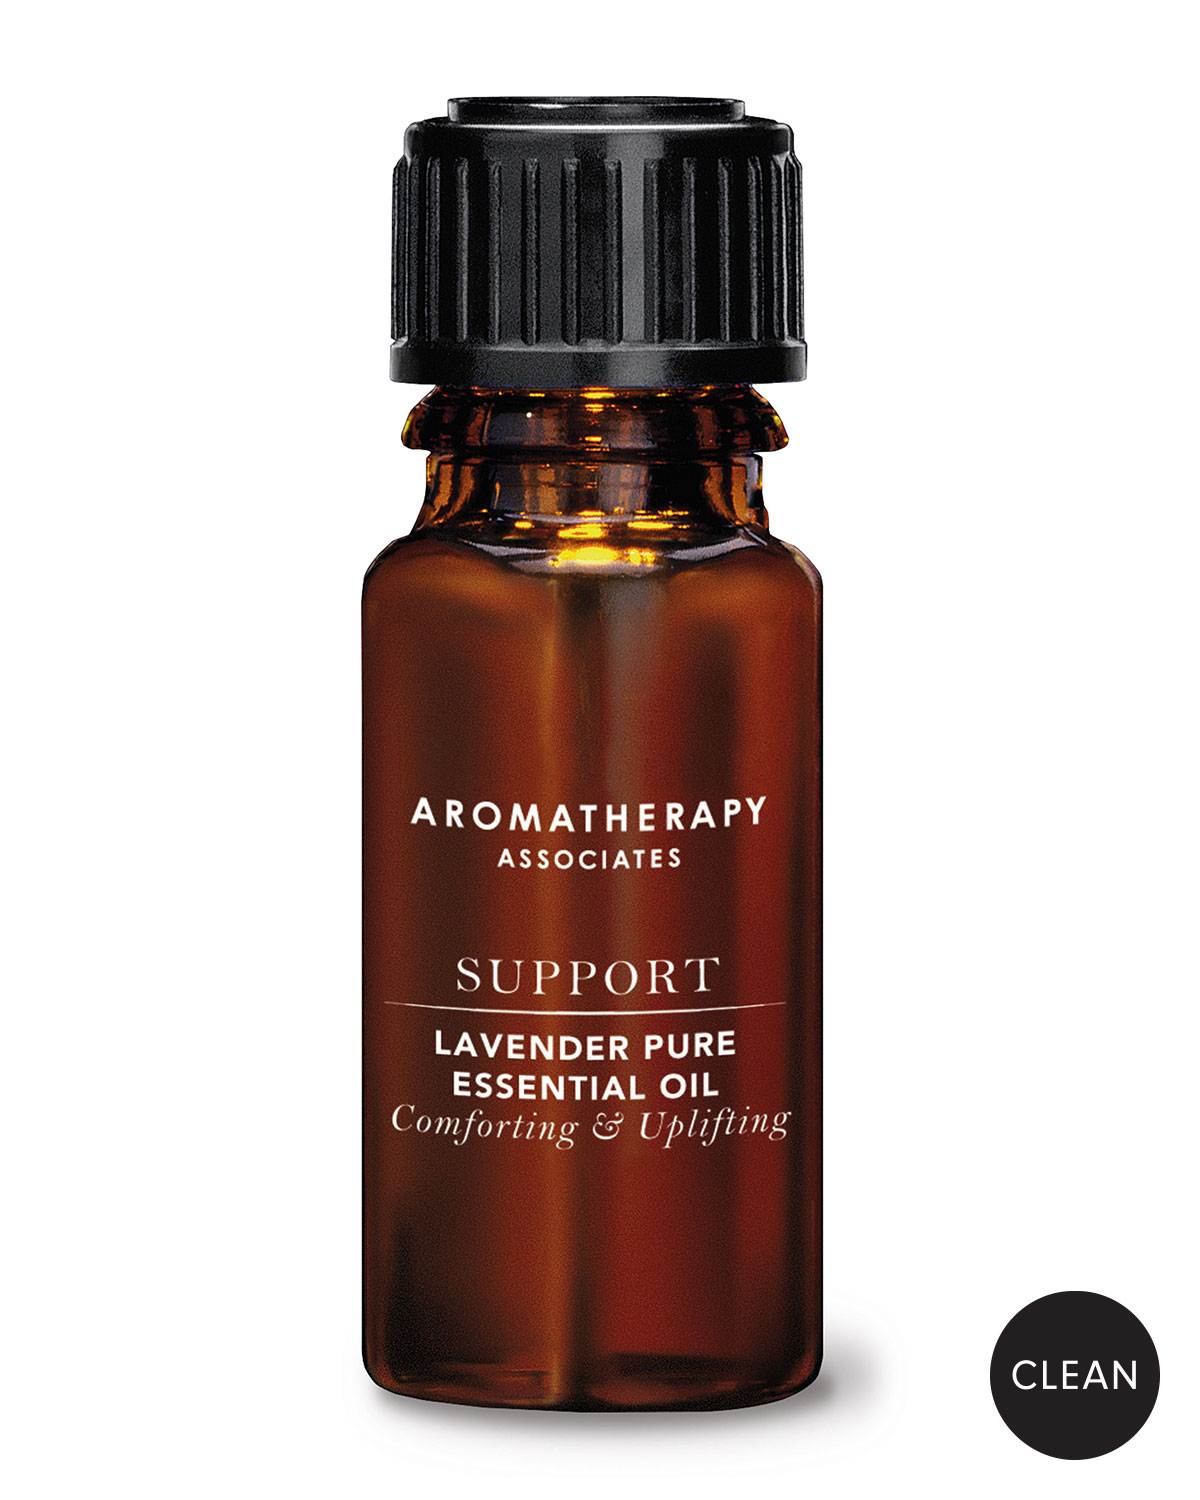 Aromatherapy Associates 0.34 oz. Support Lavender Pure Essential Oil